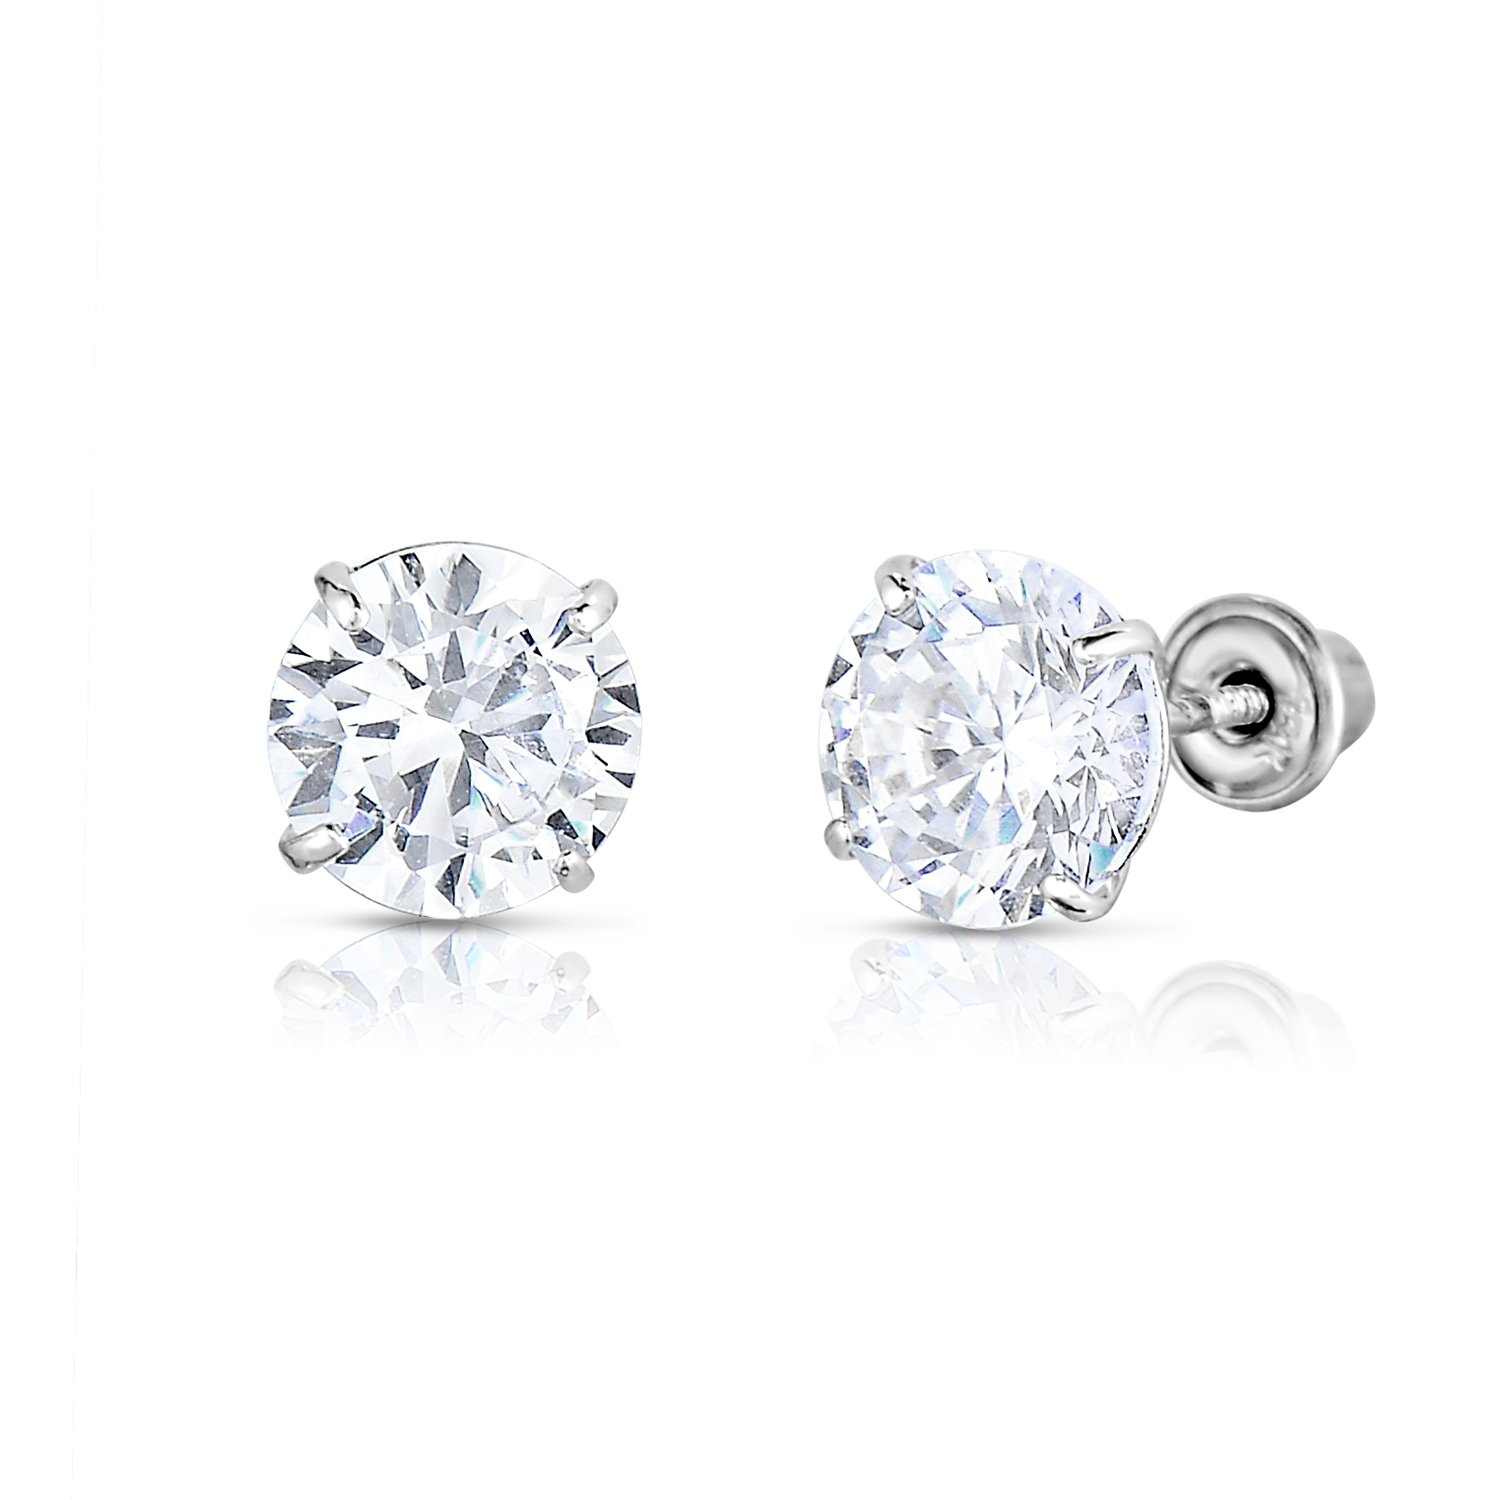 14k White Gold Solitaire Round Cubic Zirconia CZ Stud Earrings in Secure Screw-backs (5mm) by TILO JEWELRY